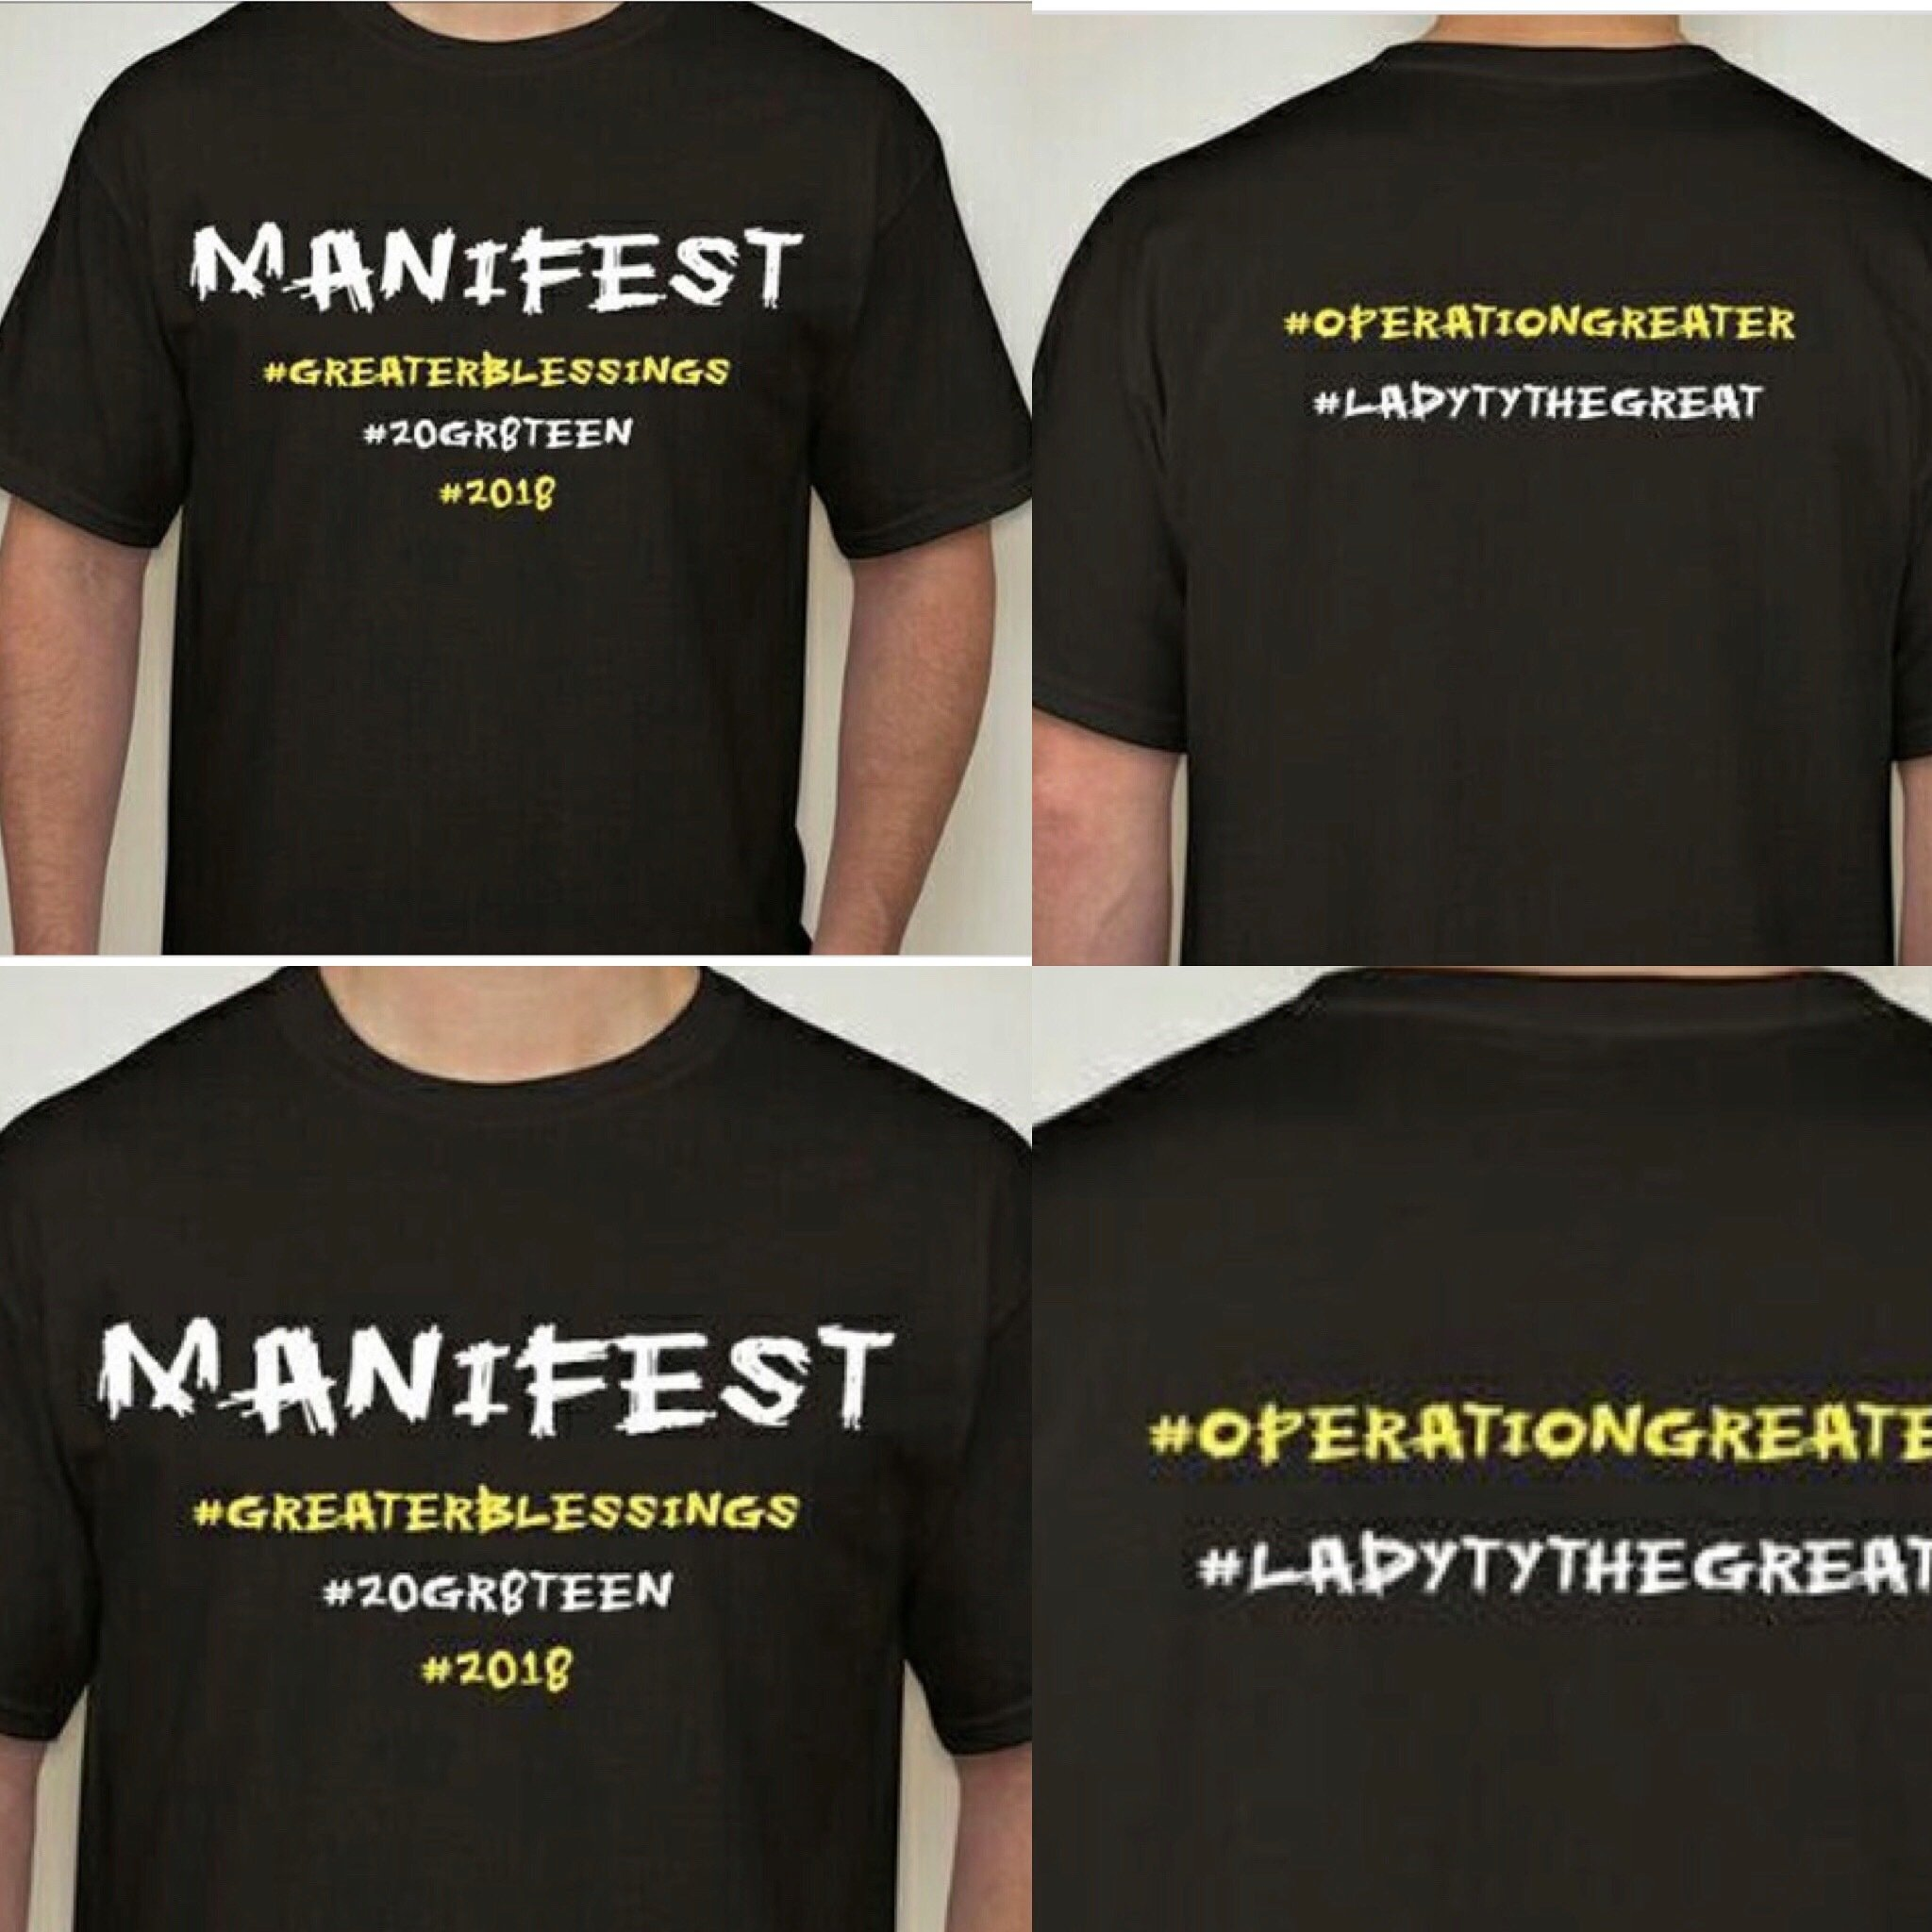 Manifest T Shirt #GreaterBlessing Special Edition mani01